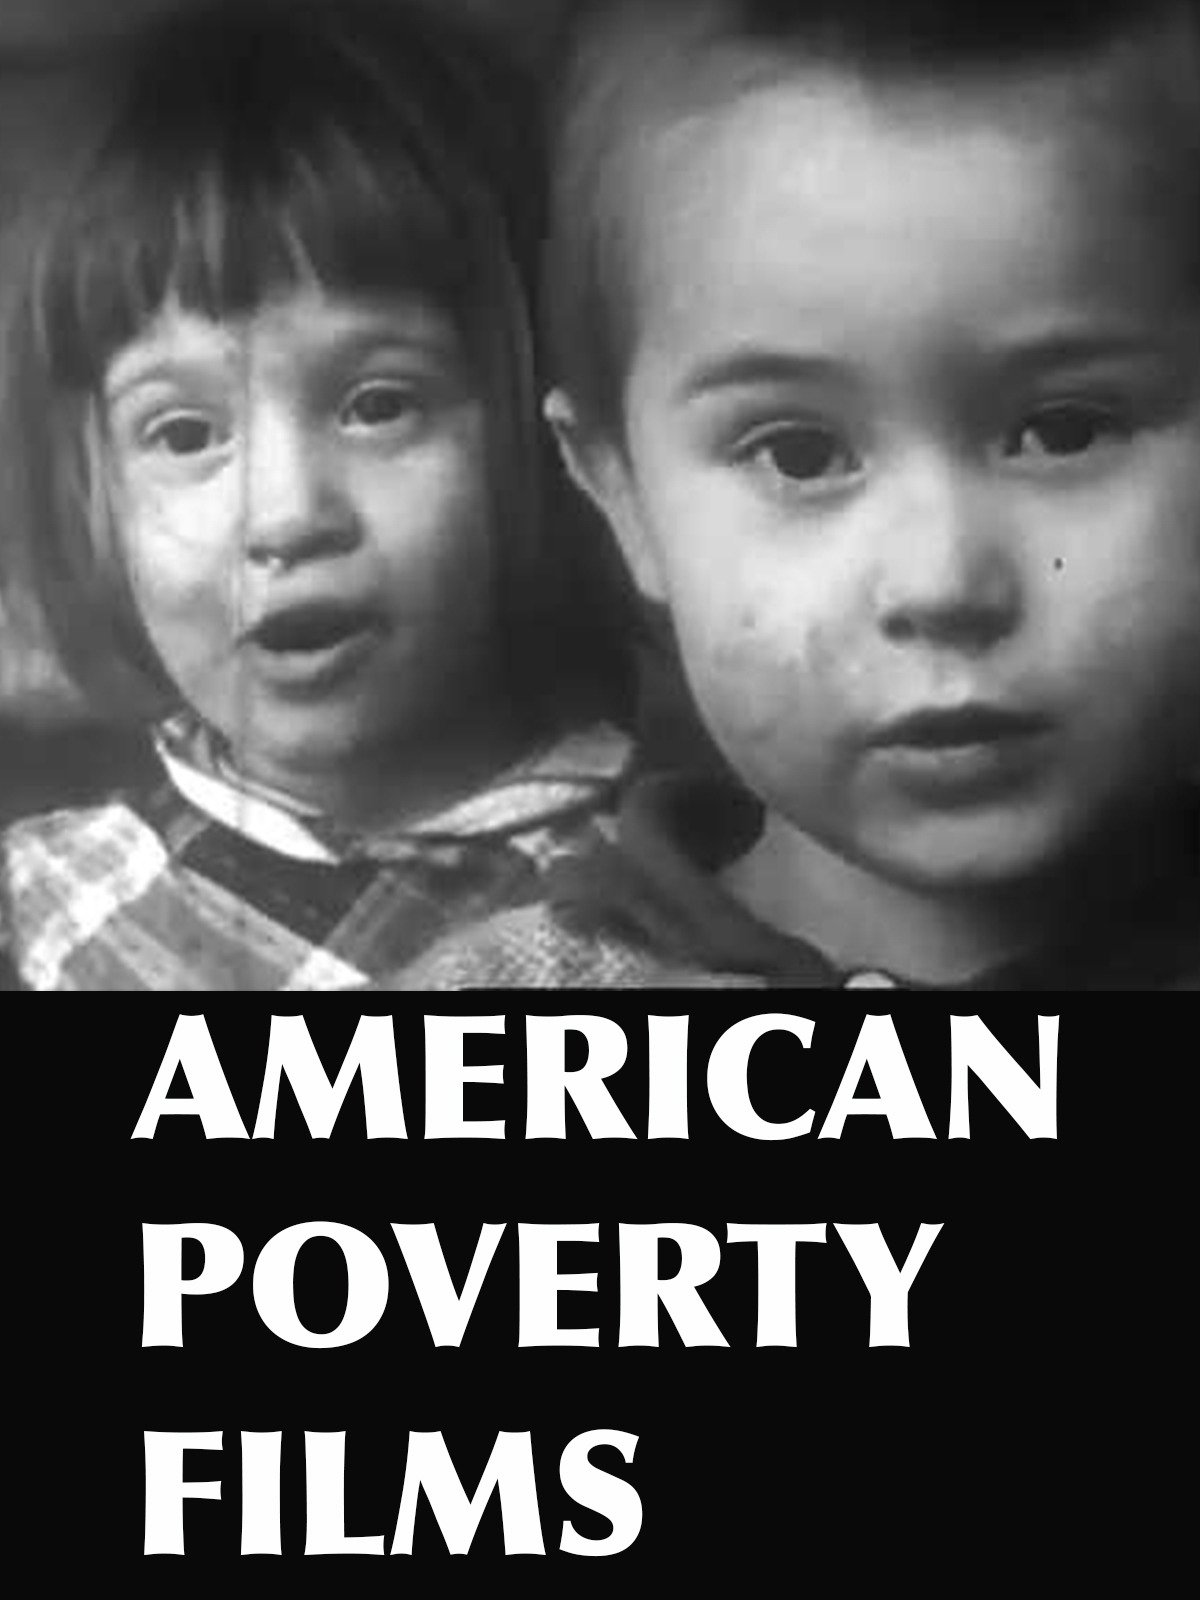 American Poverty Films